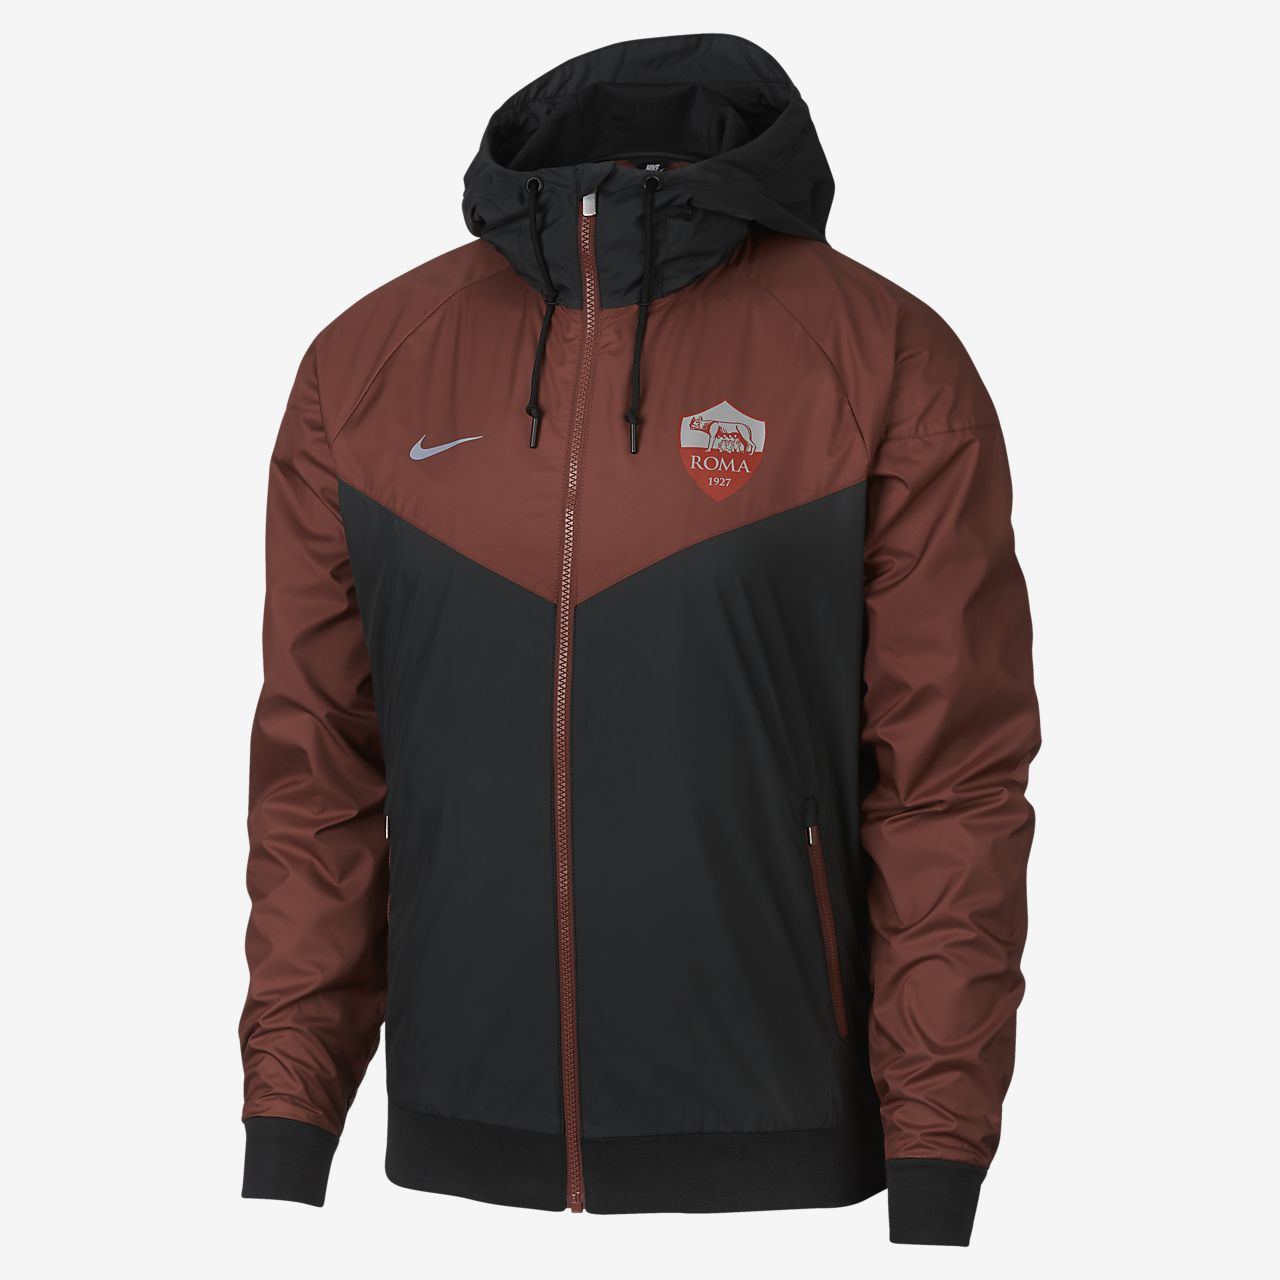 4c1213bdcd AS Roma Windrunner Men s Jacket. Nike.com NL